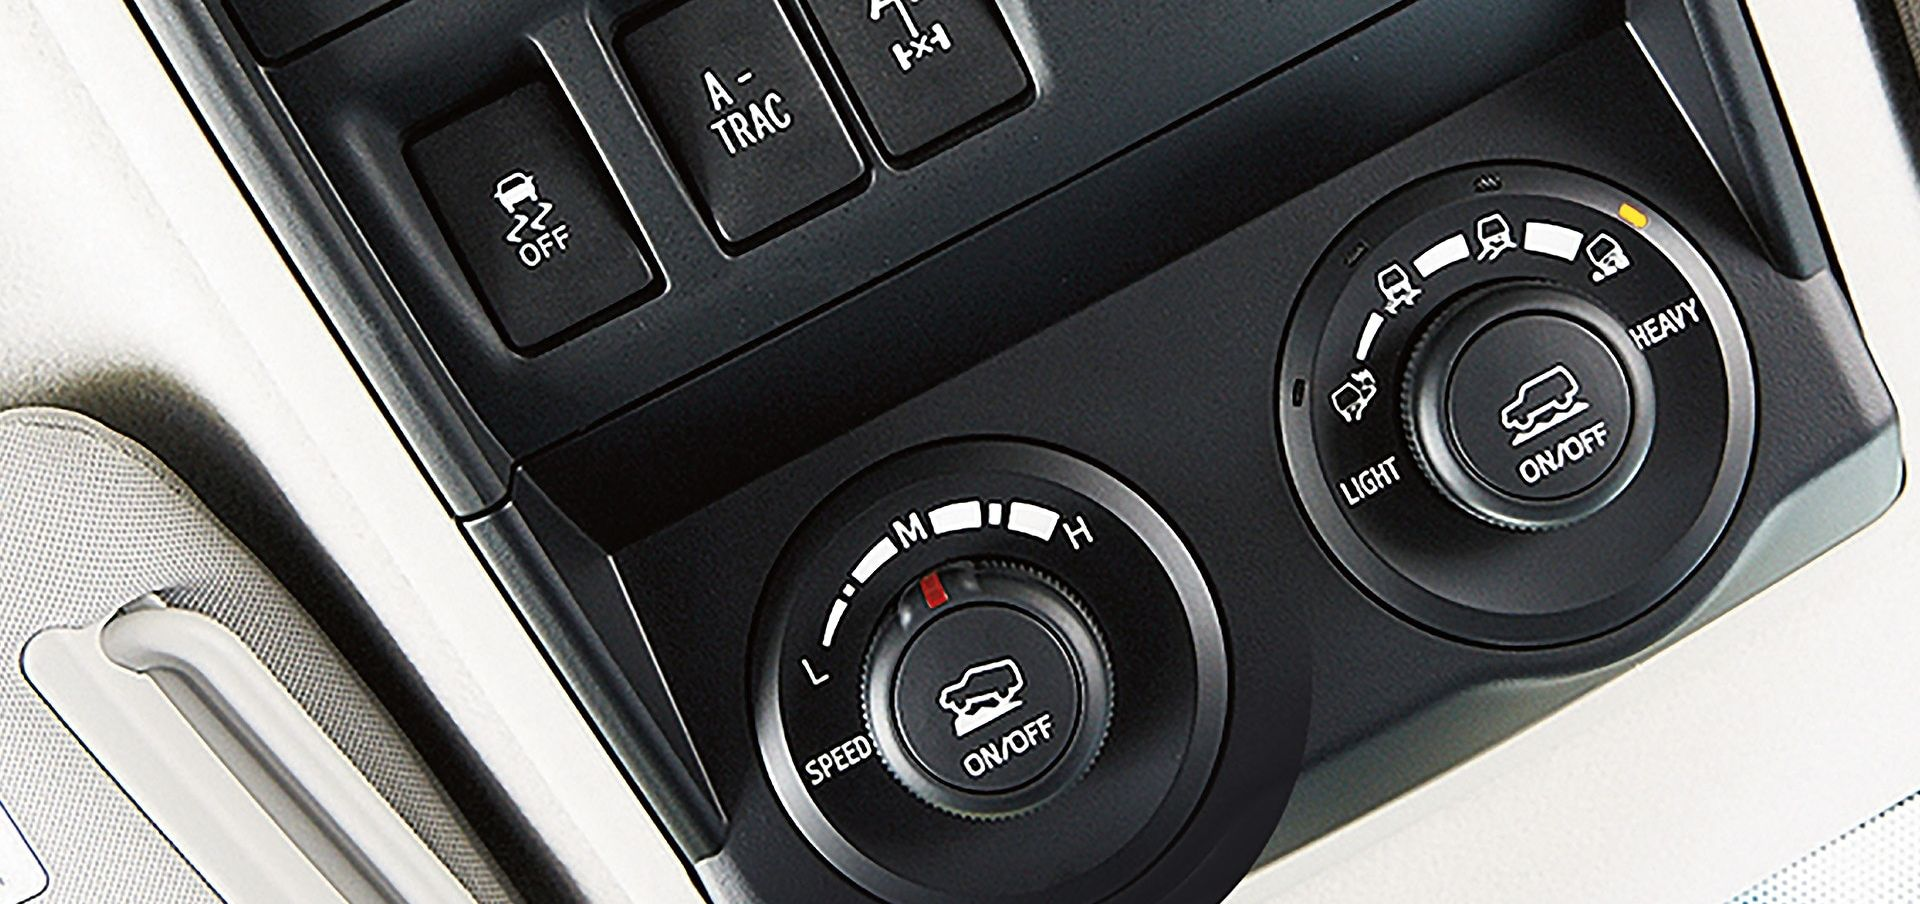 Stay in Control in the Toyota 4Runner